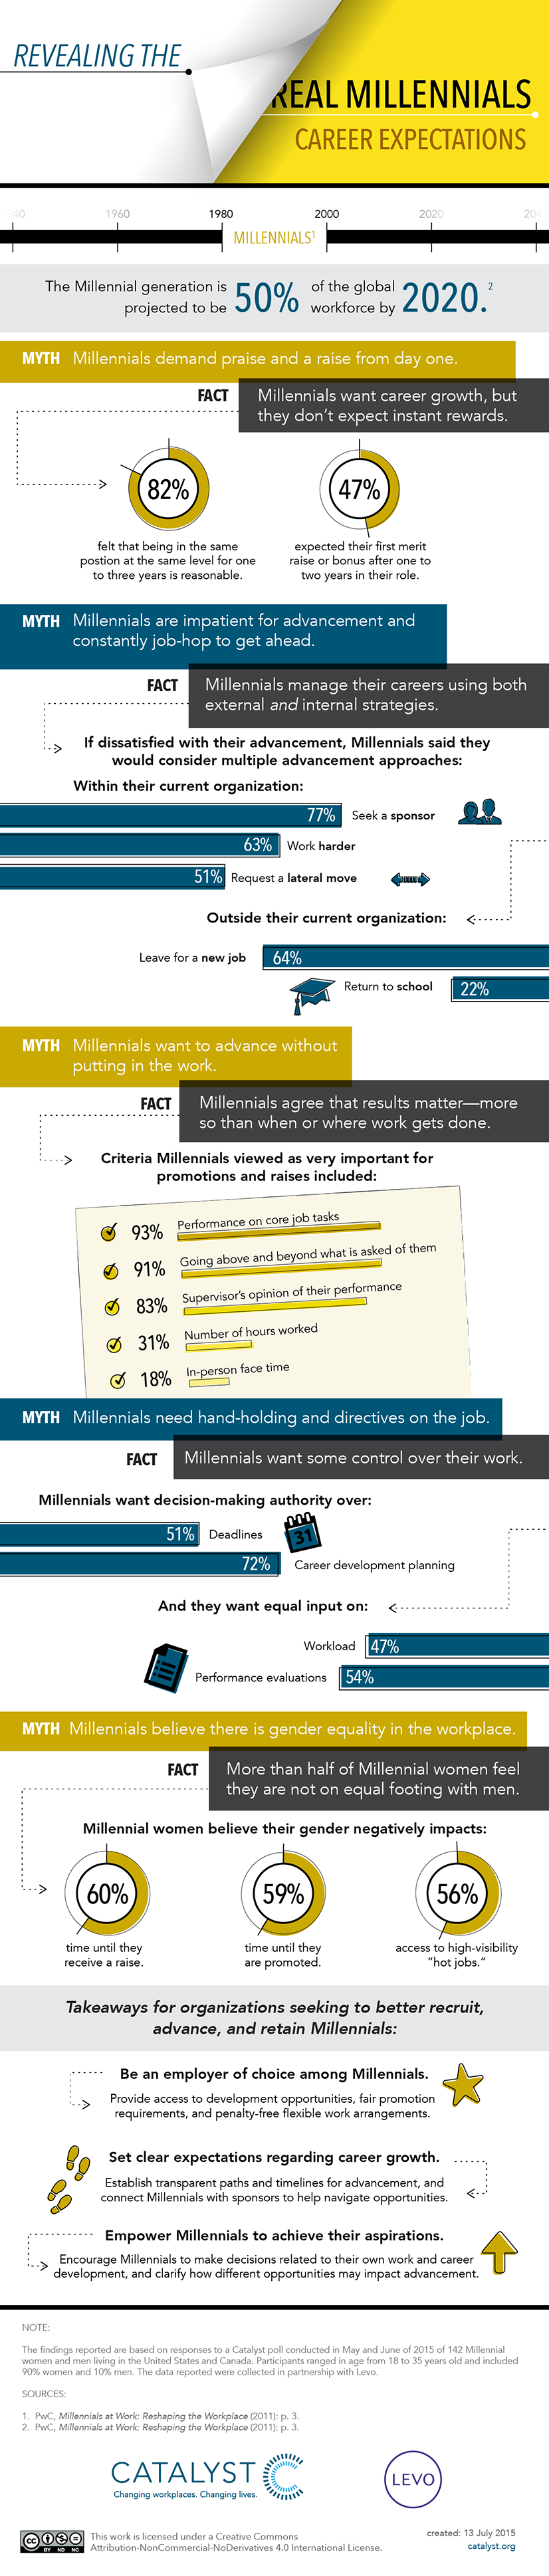 Revealing the Real Millennials: Career Expectations